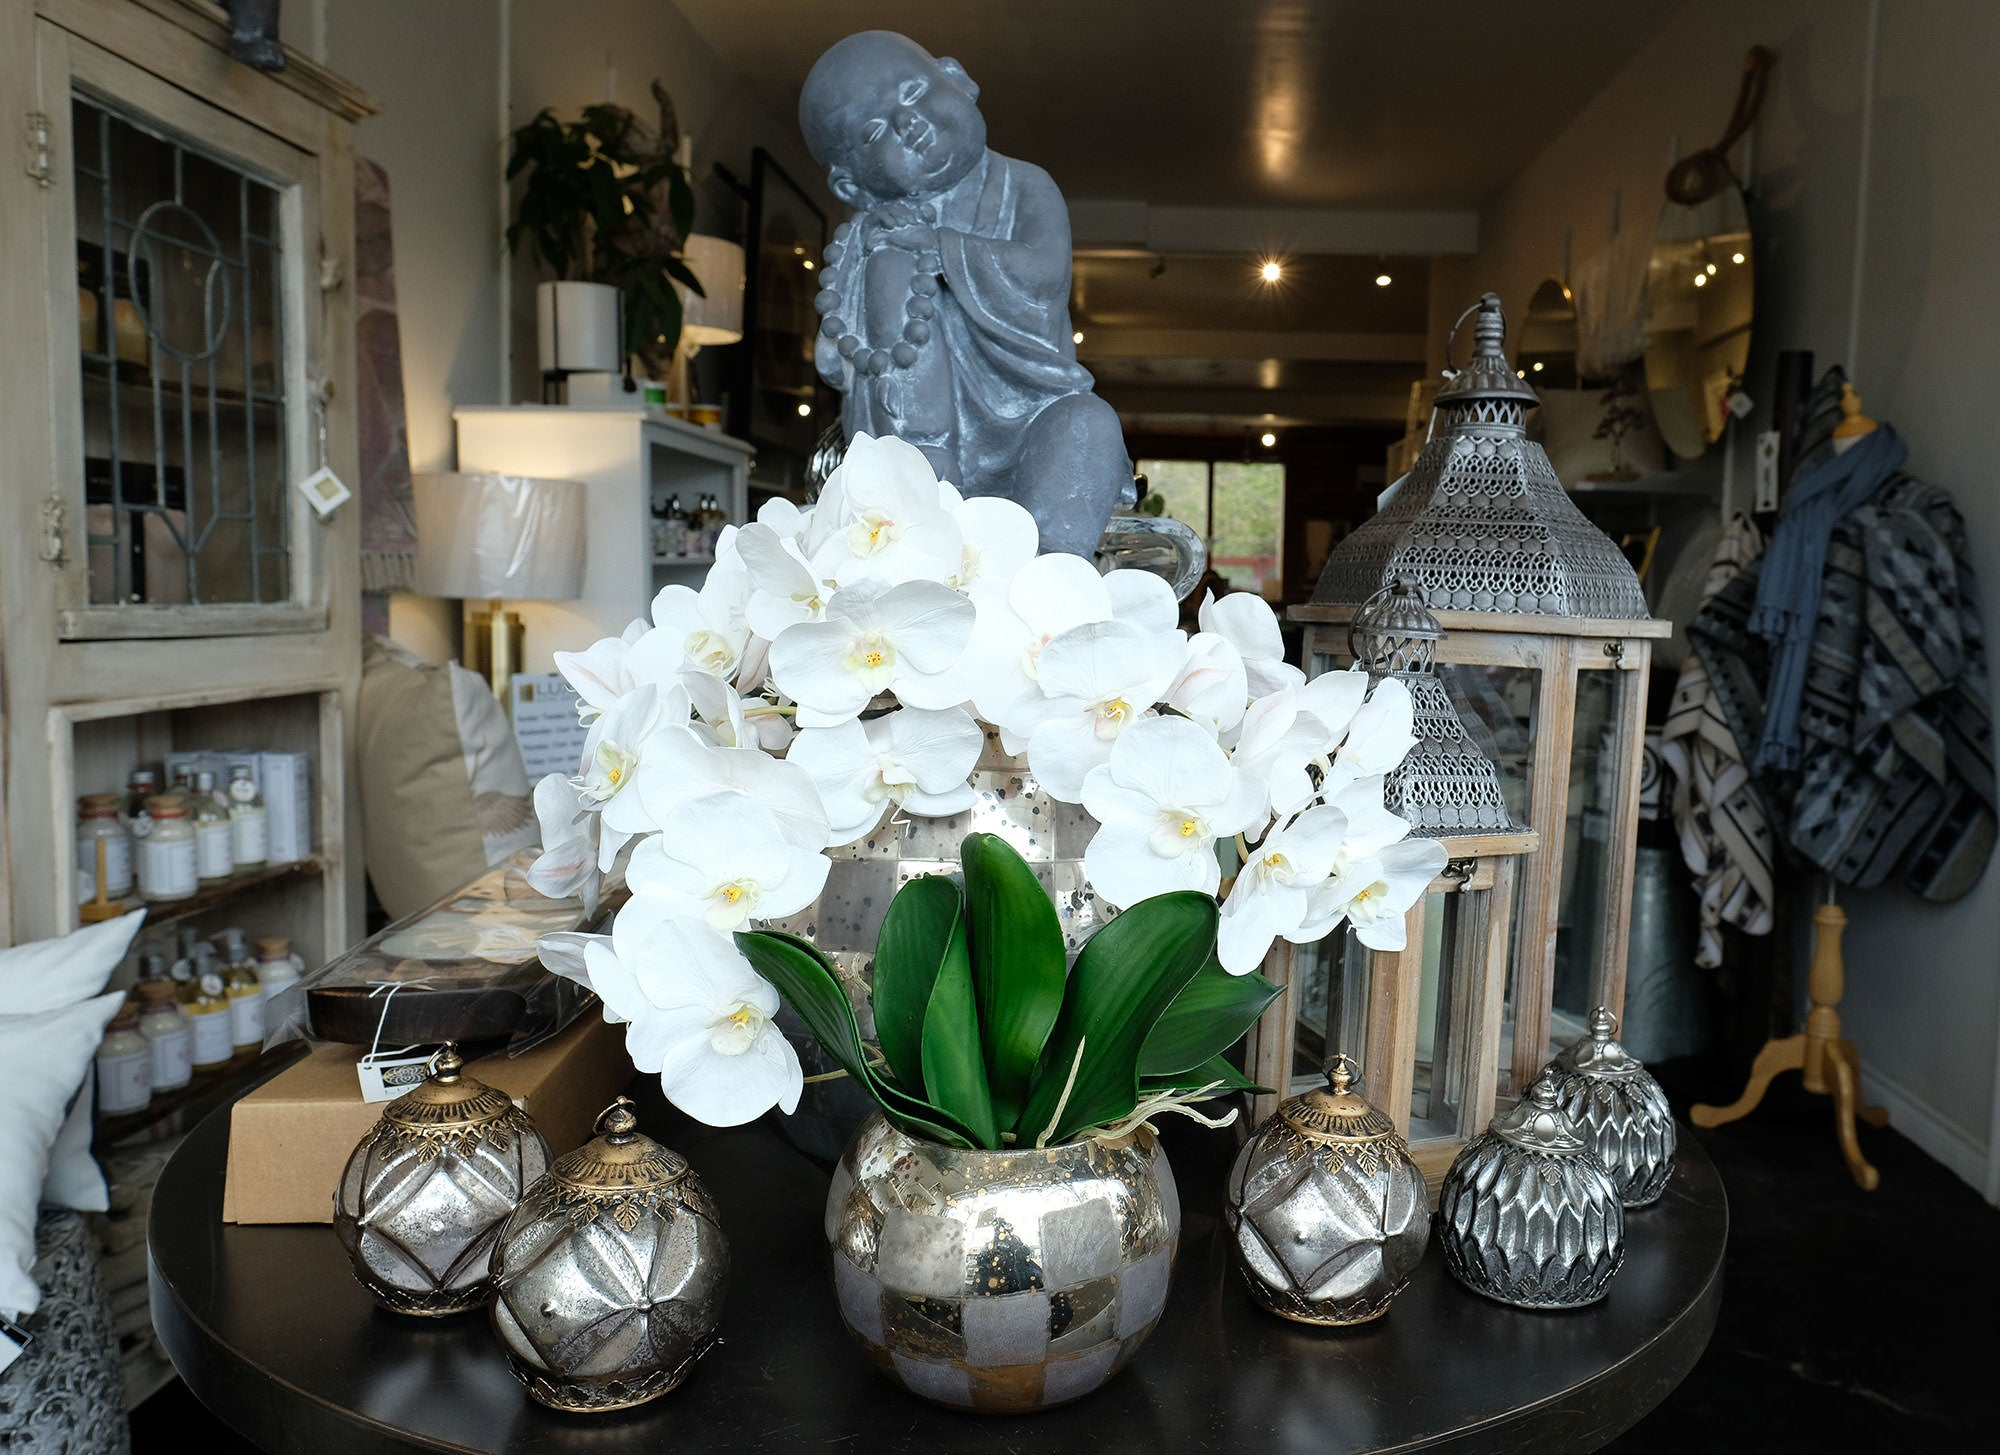 Luxe Home Décor outdoor accessories including Buddha